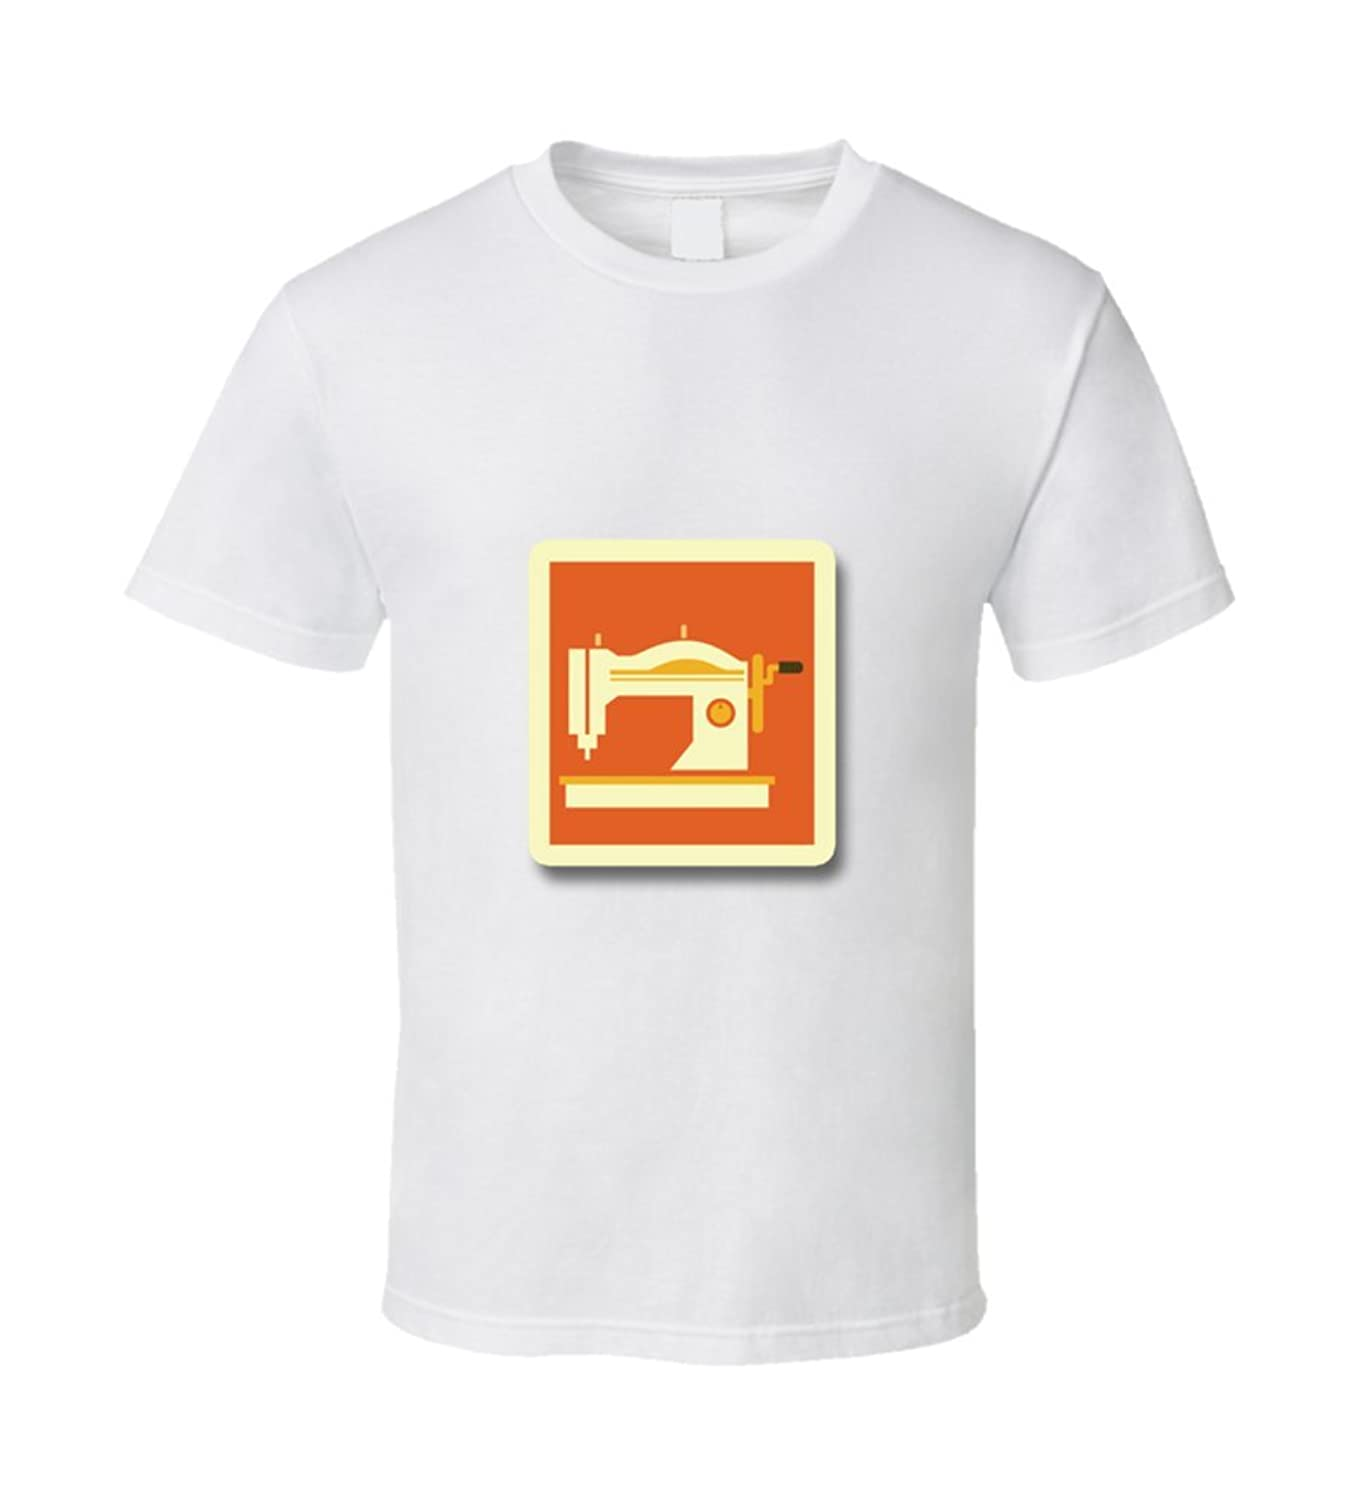 Tiny Flair's Vintage Sewing Machine T Shirt